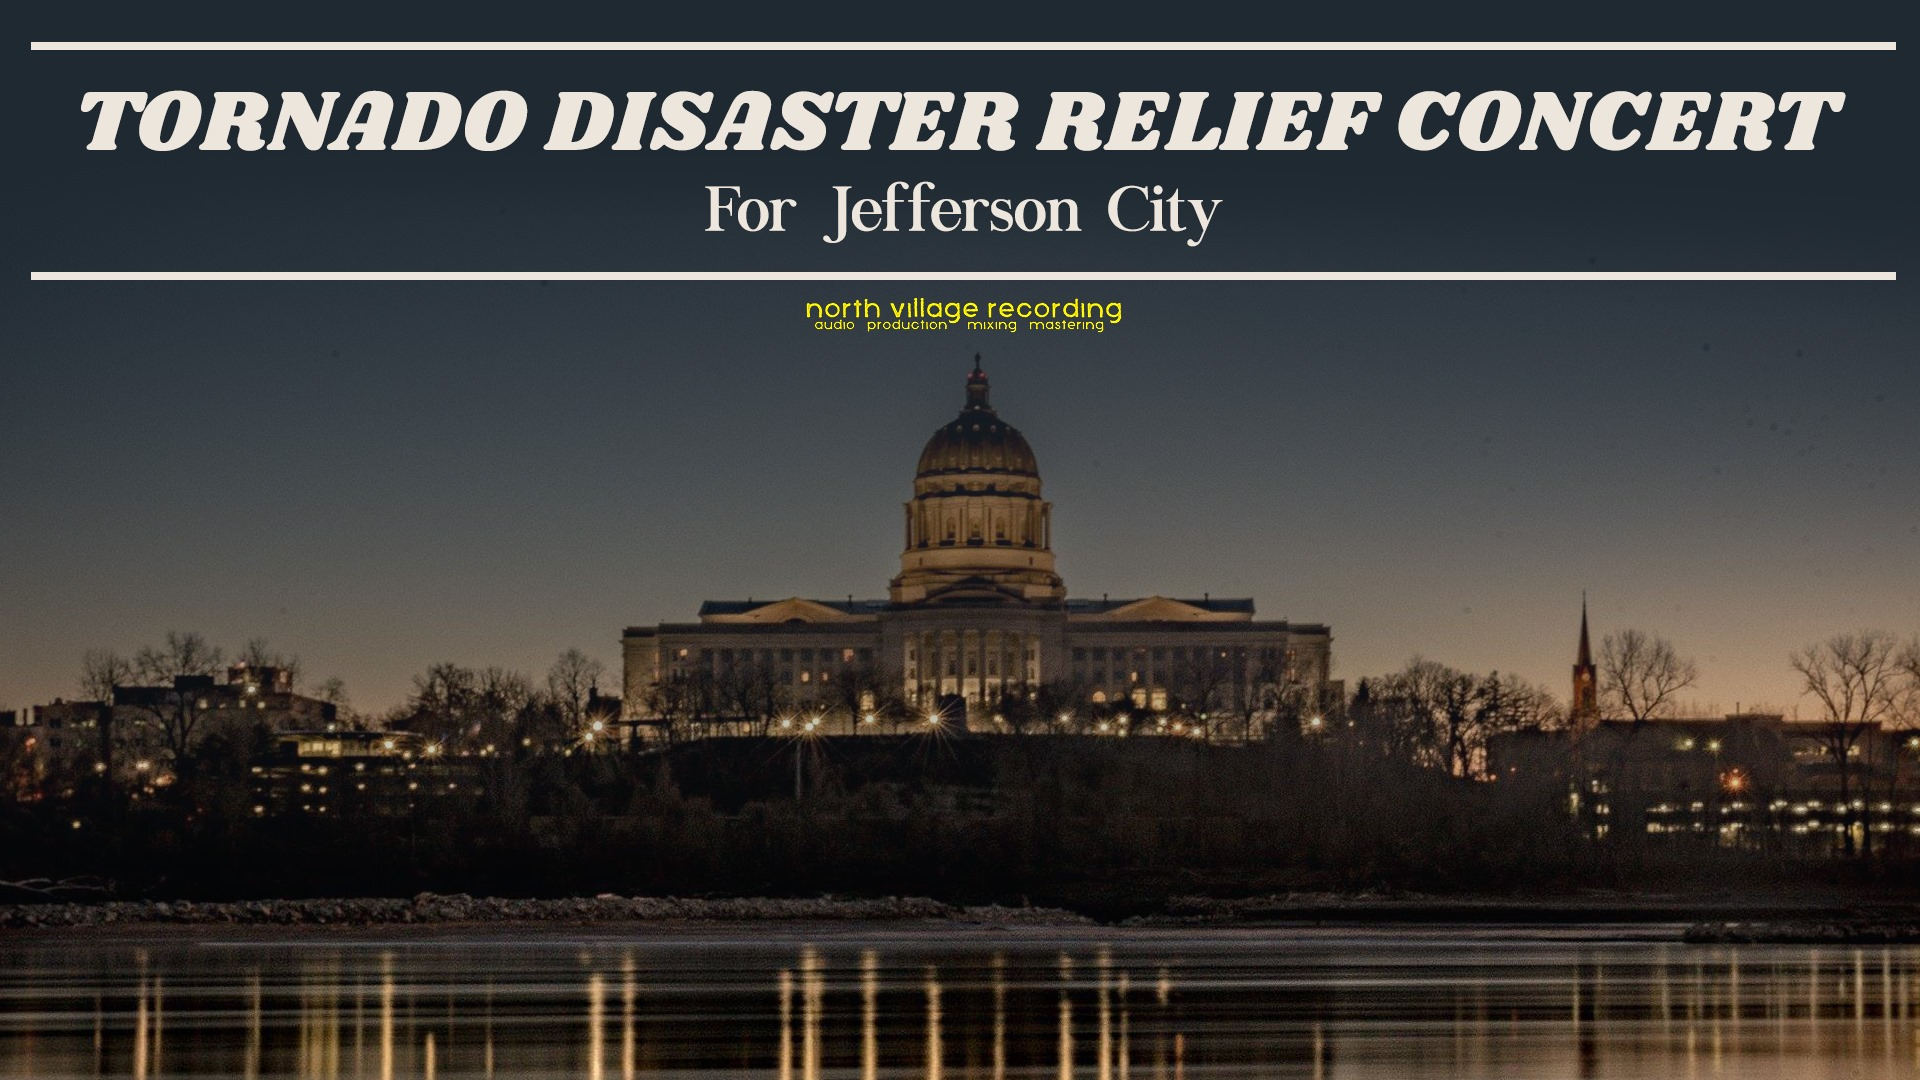 https://www.facebook.com/events/413103069528312/   Columbia, MO Presents TORNADO DISASTER RELIEF CONCERT Benefitting the People of Jefferson City, MO ft. Brad Cunningham +  Mercury Trio  +  Schuyler Prenger  +  Dramatik  +  The Dave Baker Band  & more TBA  Sponsored by:  North Village Recording ,  Byron Amplification , and  Access Percussion   Thursday, May 30 Doors 6pm | Show 7pm at The Blue Note  $5 Minimum Suggested Donation _____  Our friends in Jefferson City need our help! Join us at The Blue Note on Thursday May 30 to raise funds for disaster relief from the devastating tornado that ravaged the heart of the city. More live music performers TBA. 100% of ticket proceeds will go directly to Jefferson City.